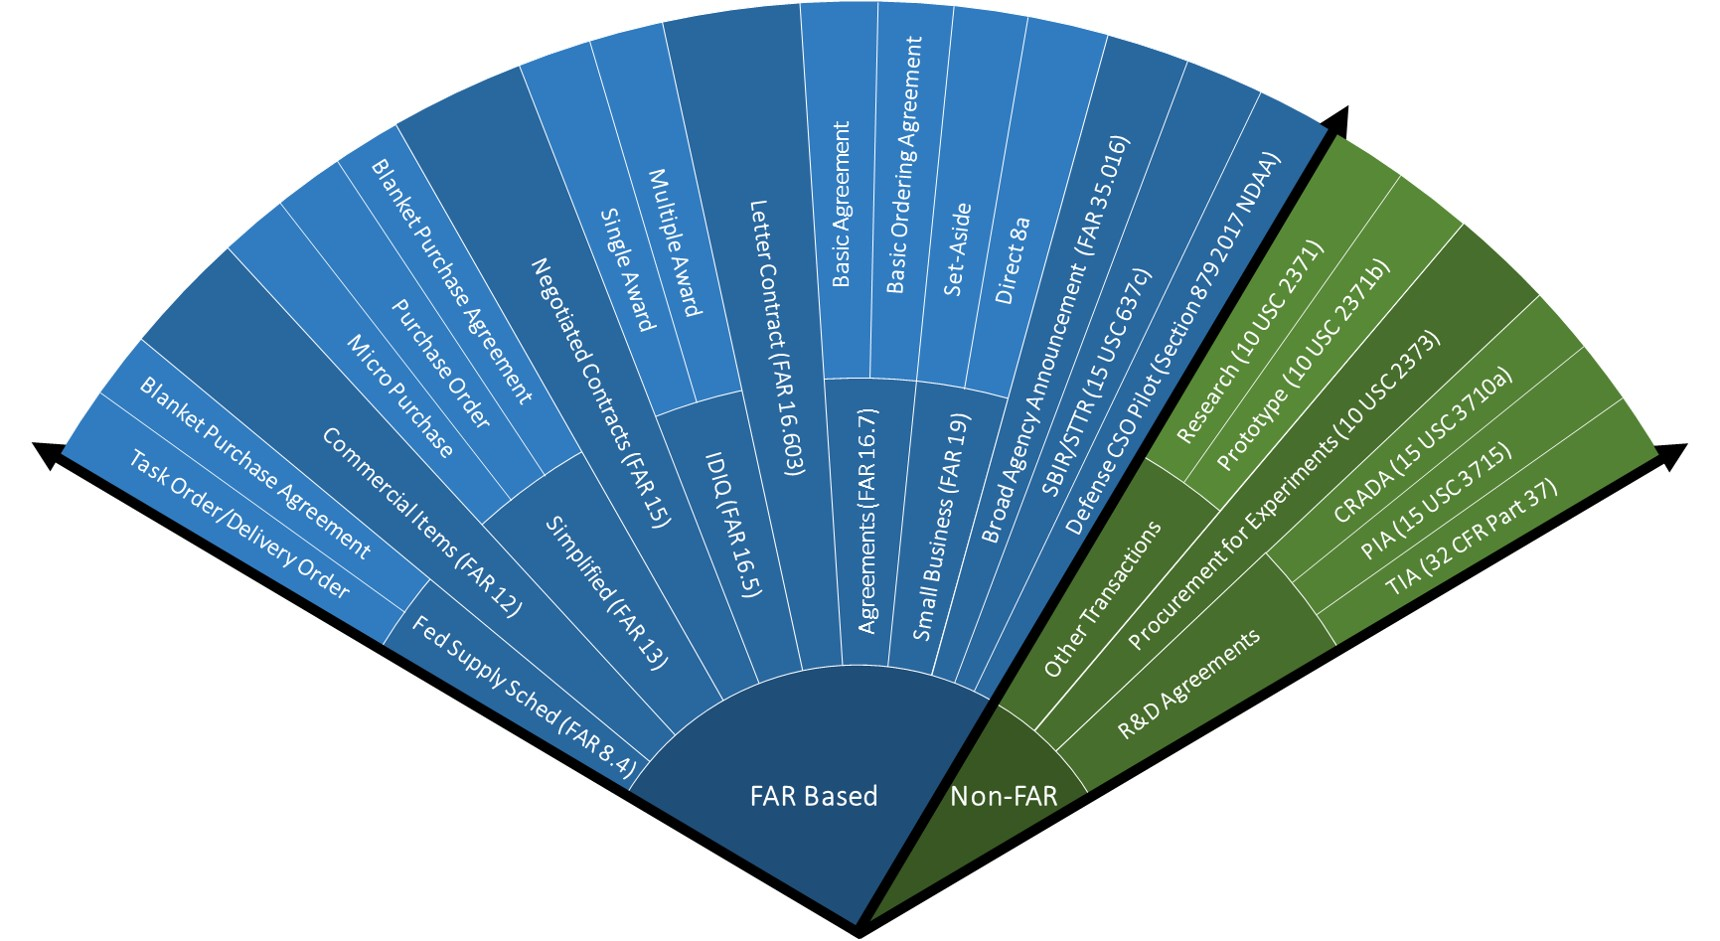 Contracting Cone showing a spectrum of contracting strategies, which are categorized by FAR and Non-FAR/Statutory authorities.